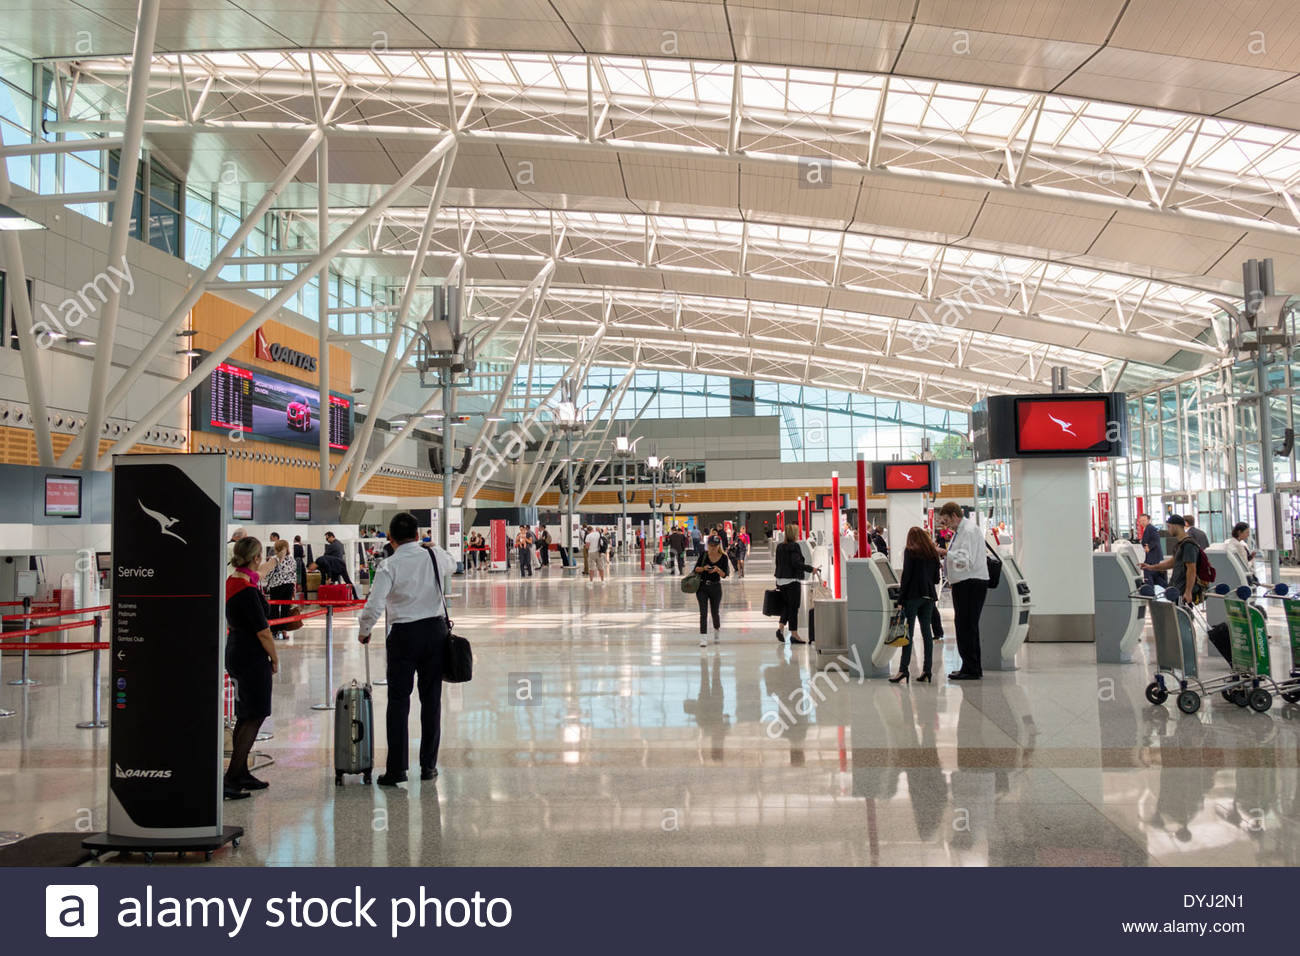 Stock photo sydney australia nsw new south wales kingsford smith airport syd terminal concourse inside interior design architectural qantas airlines